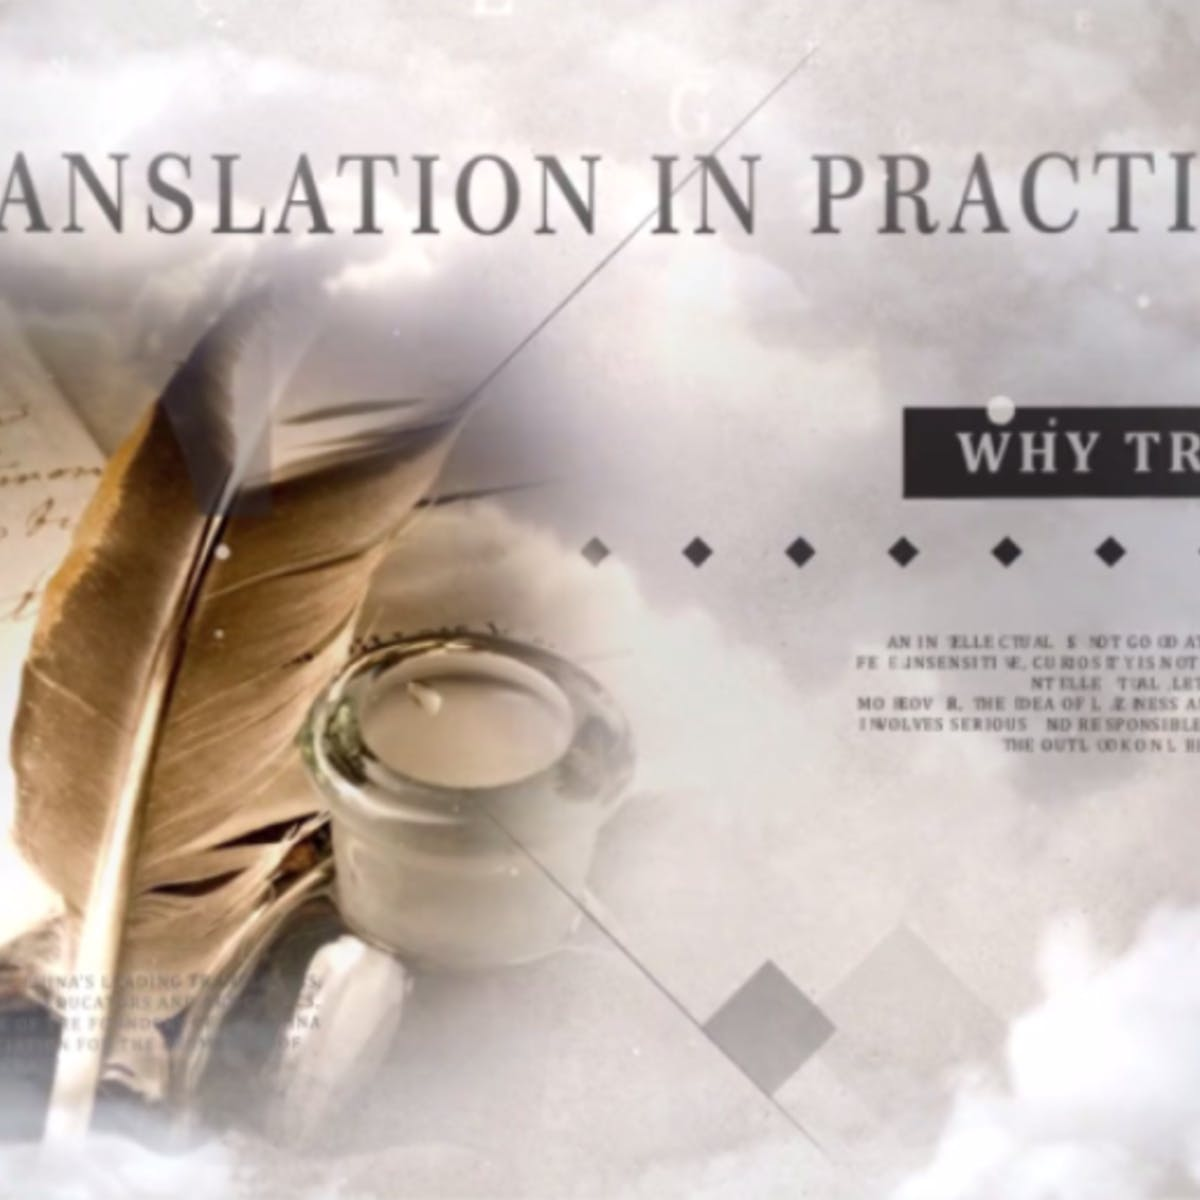 Translation in Practice